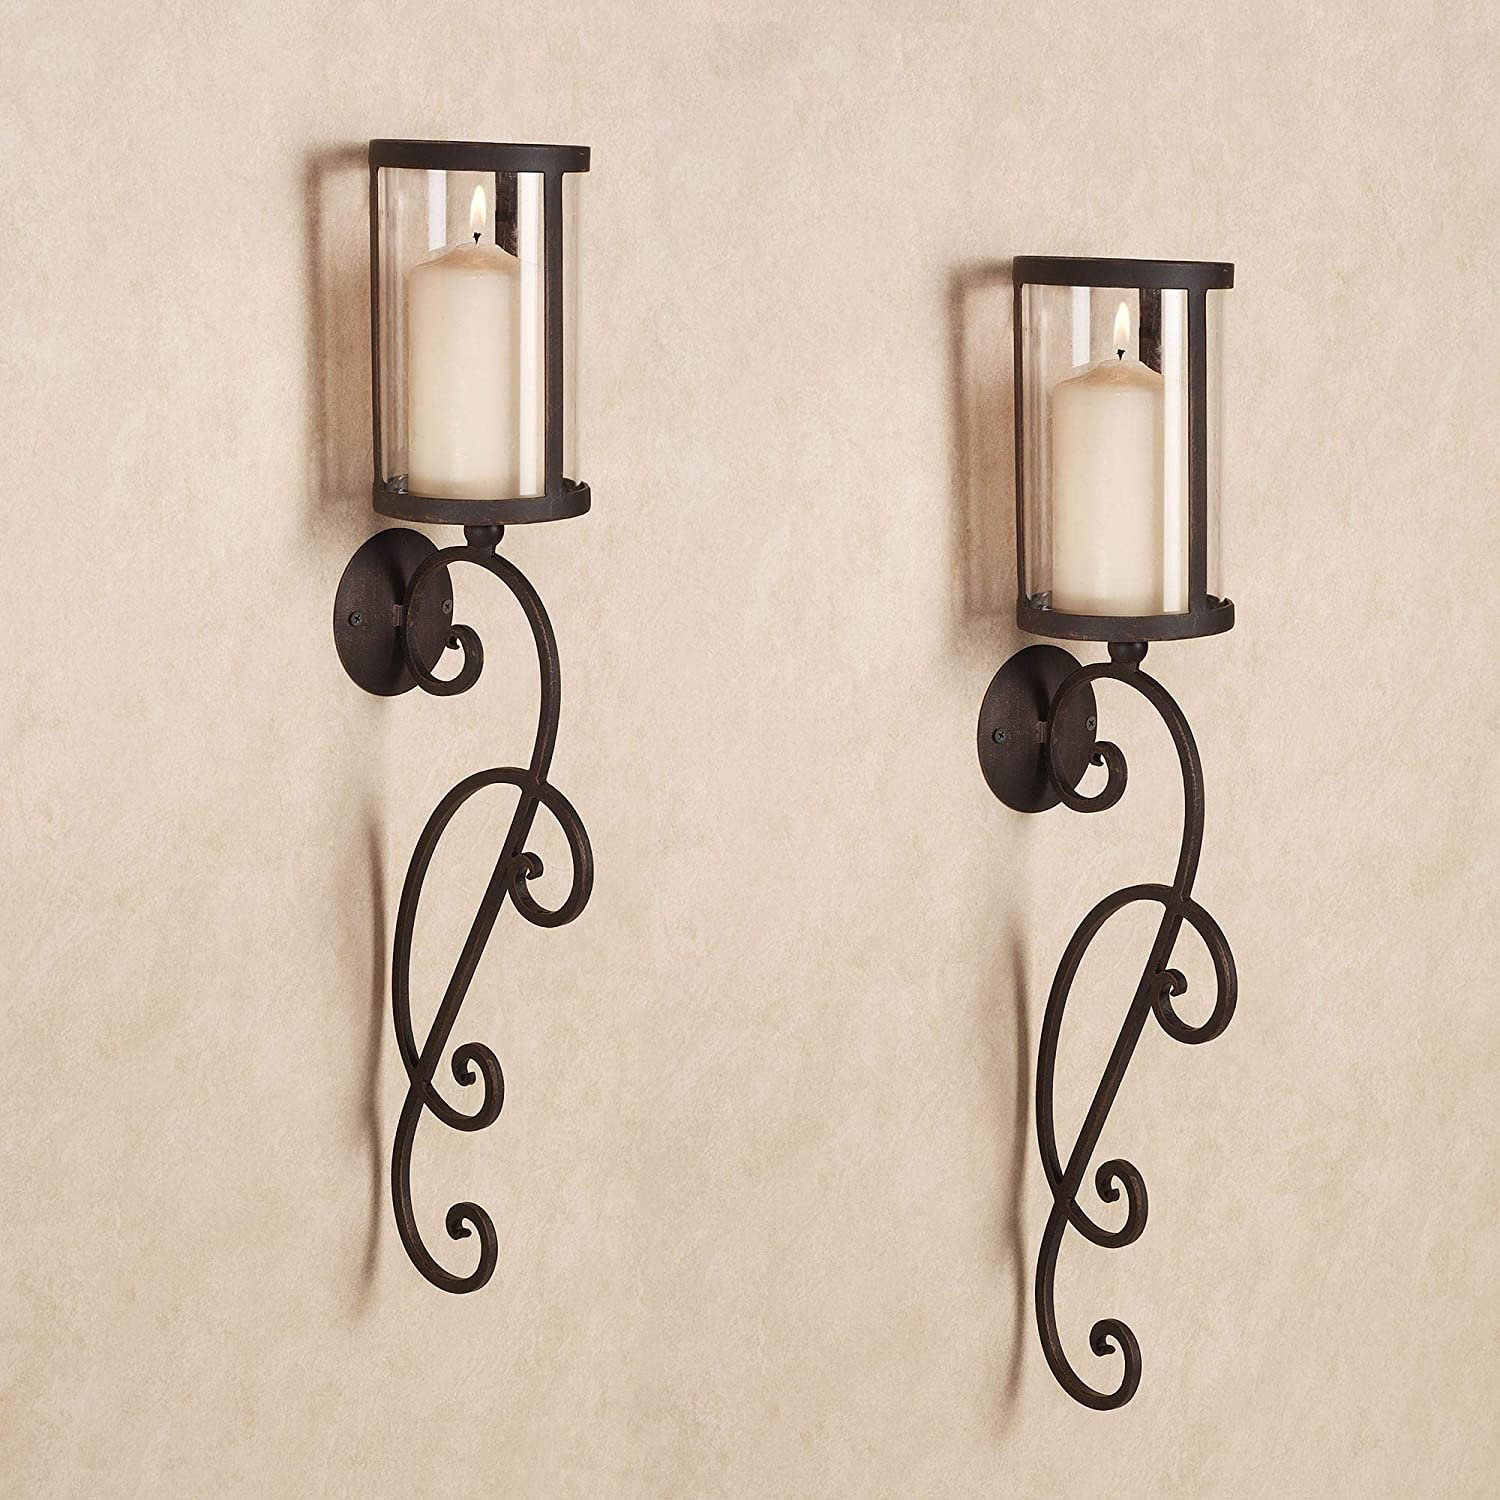 Touch of Class Nico SALENEW very popular New arrival Hurricane Candle Br Wall Antique Sconce Pair